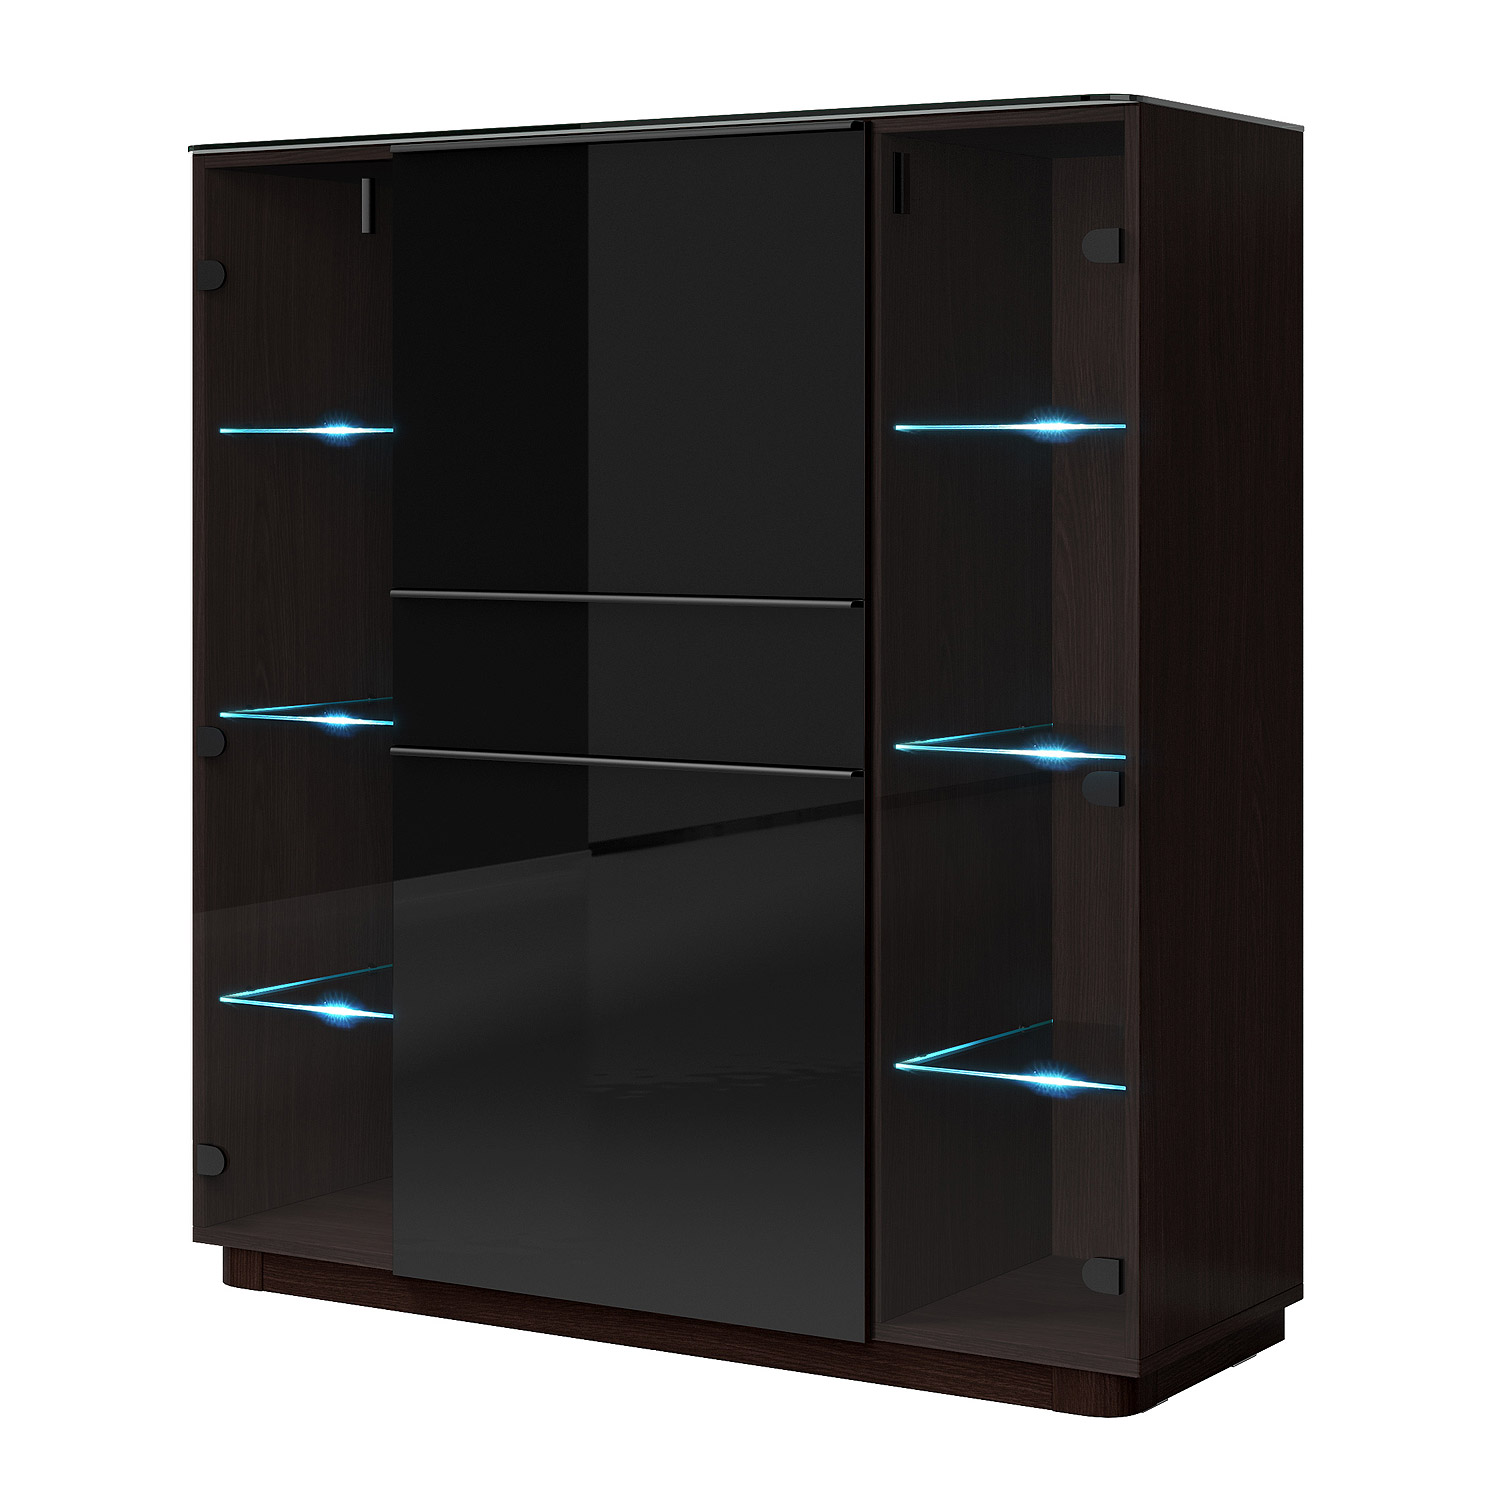 barschrank togos wm hochkommode highboard glas schwarz und wenge inkl led. Black Bedroom Furniture Sets. Home Design Ideas